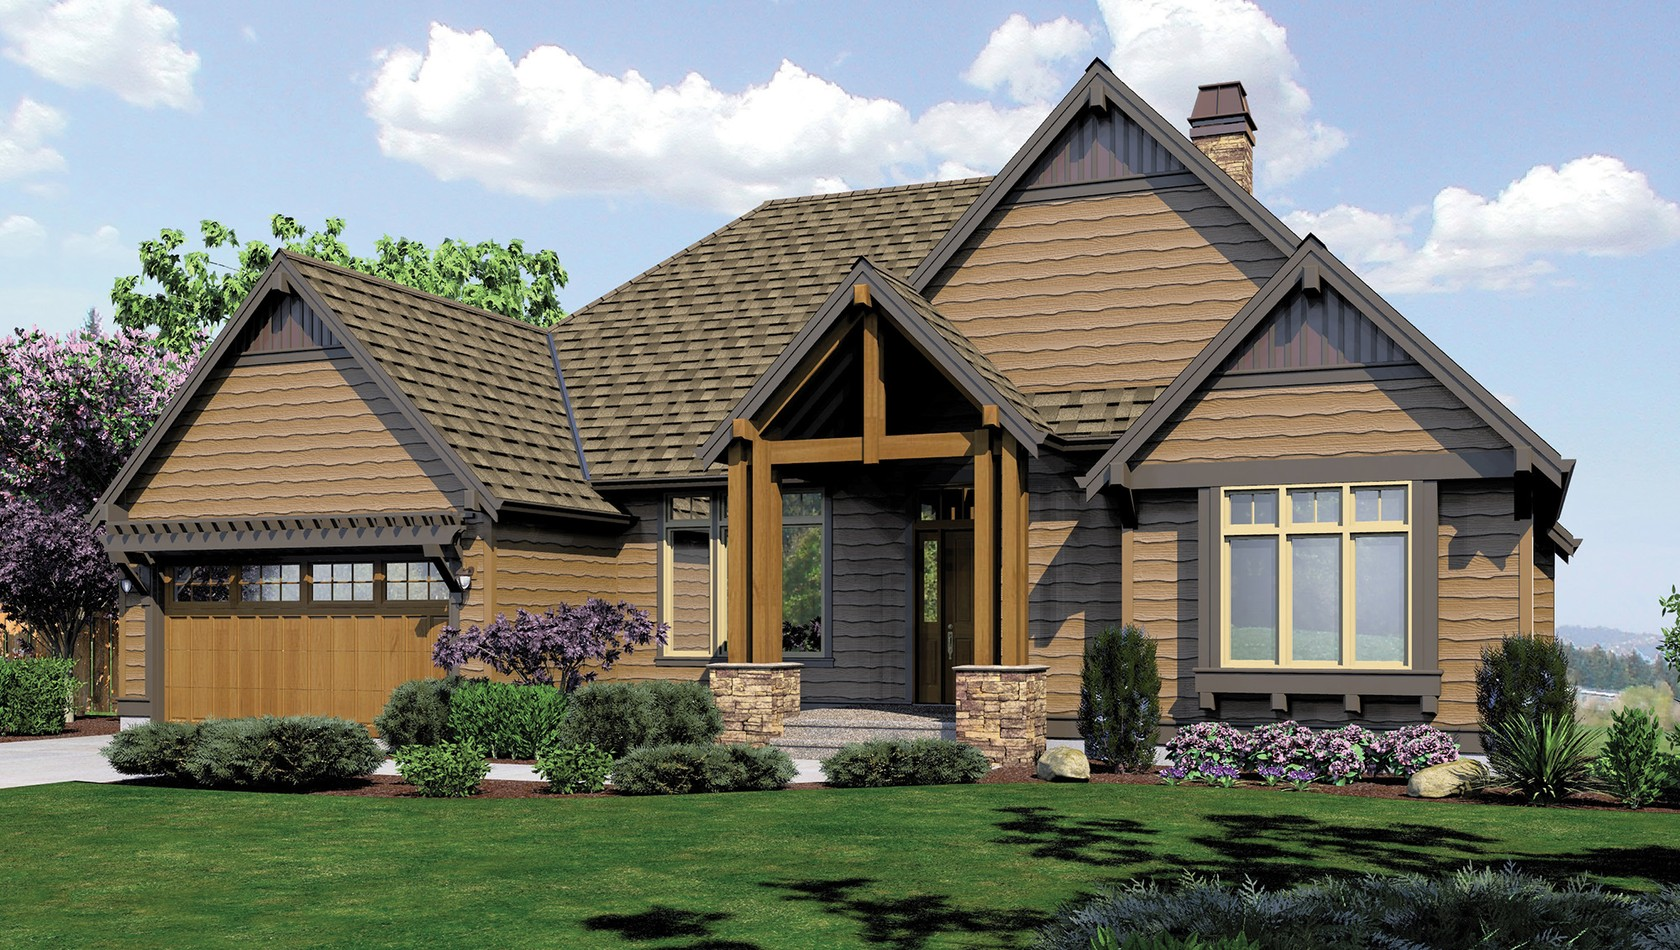 Mascord House Plan 1329: The Sycamore